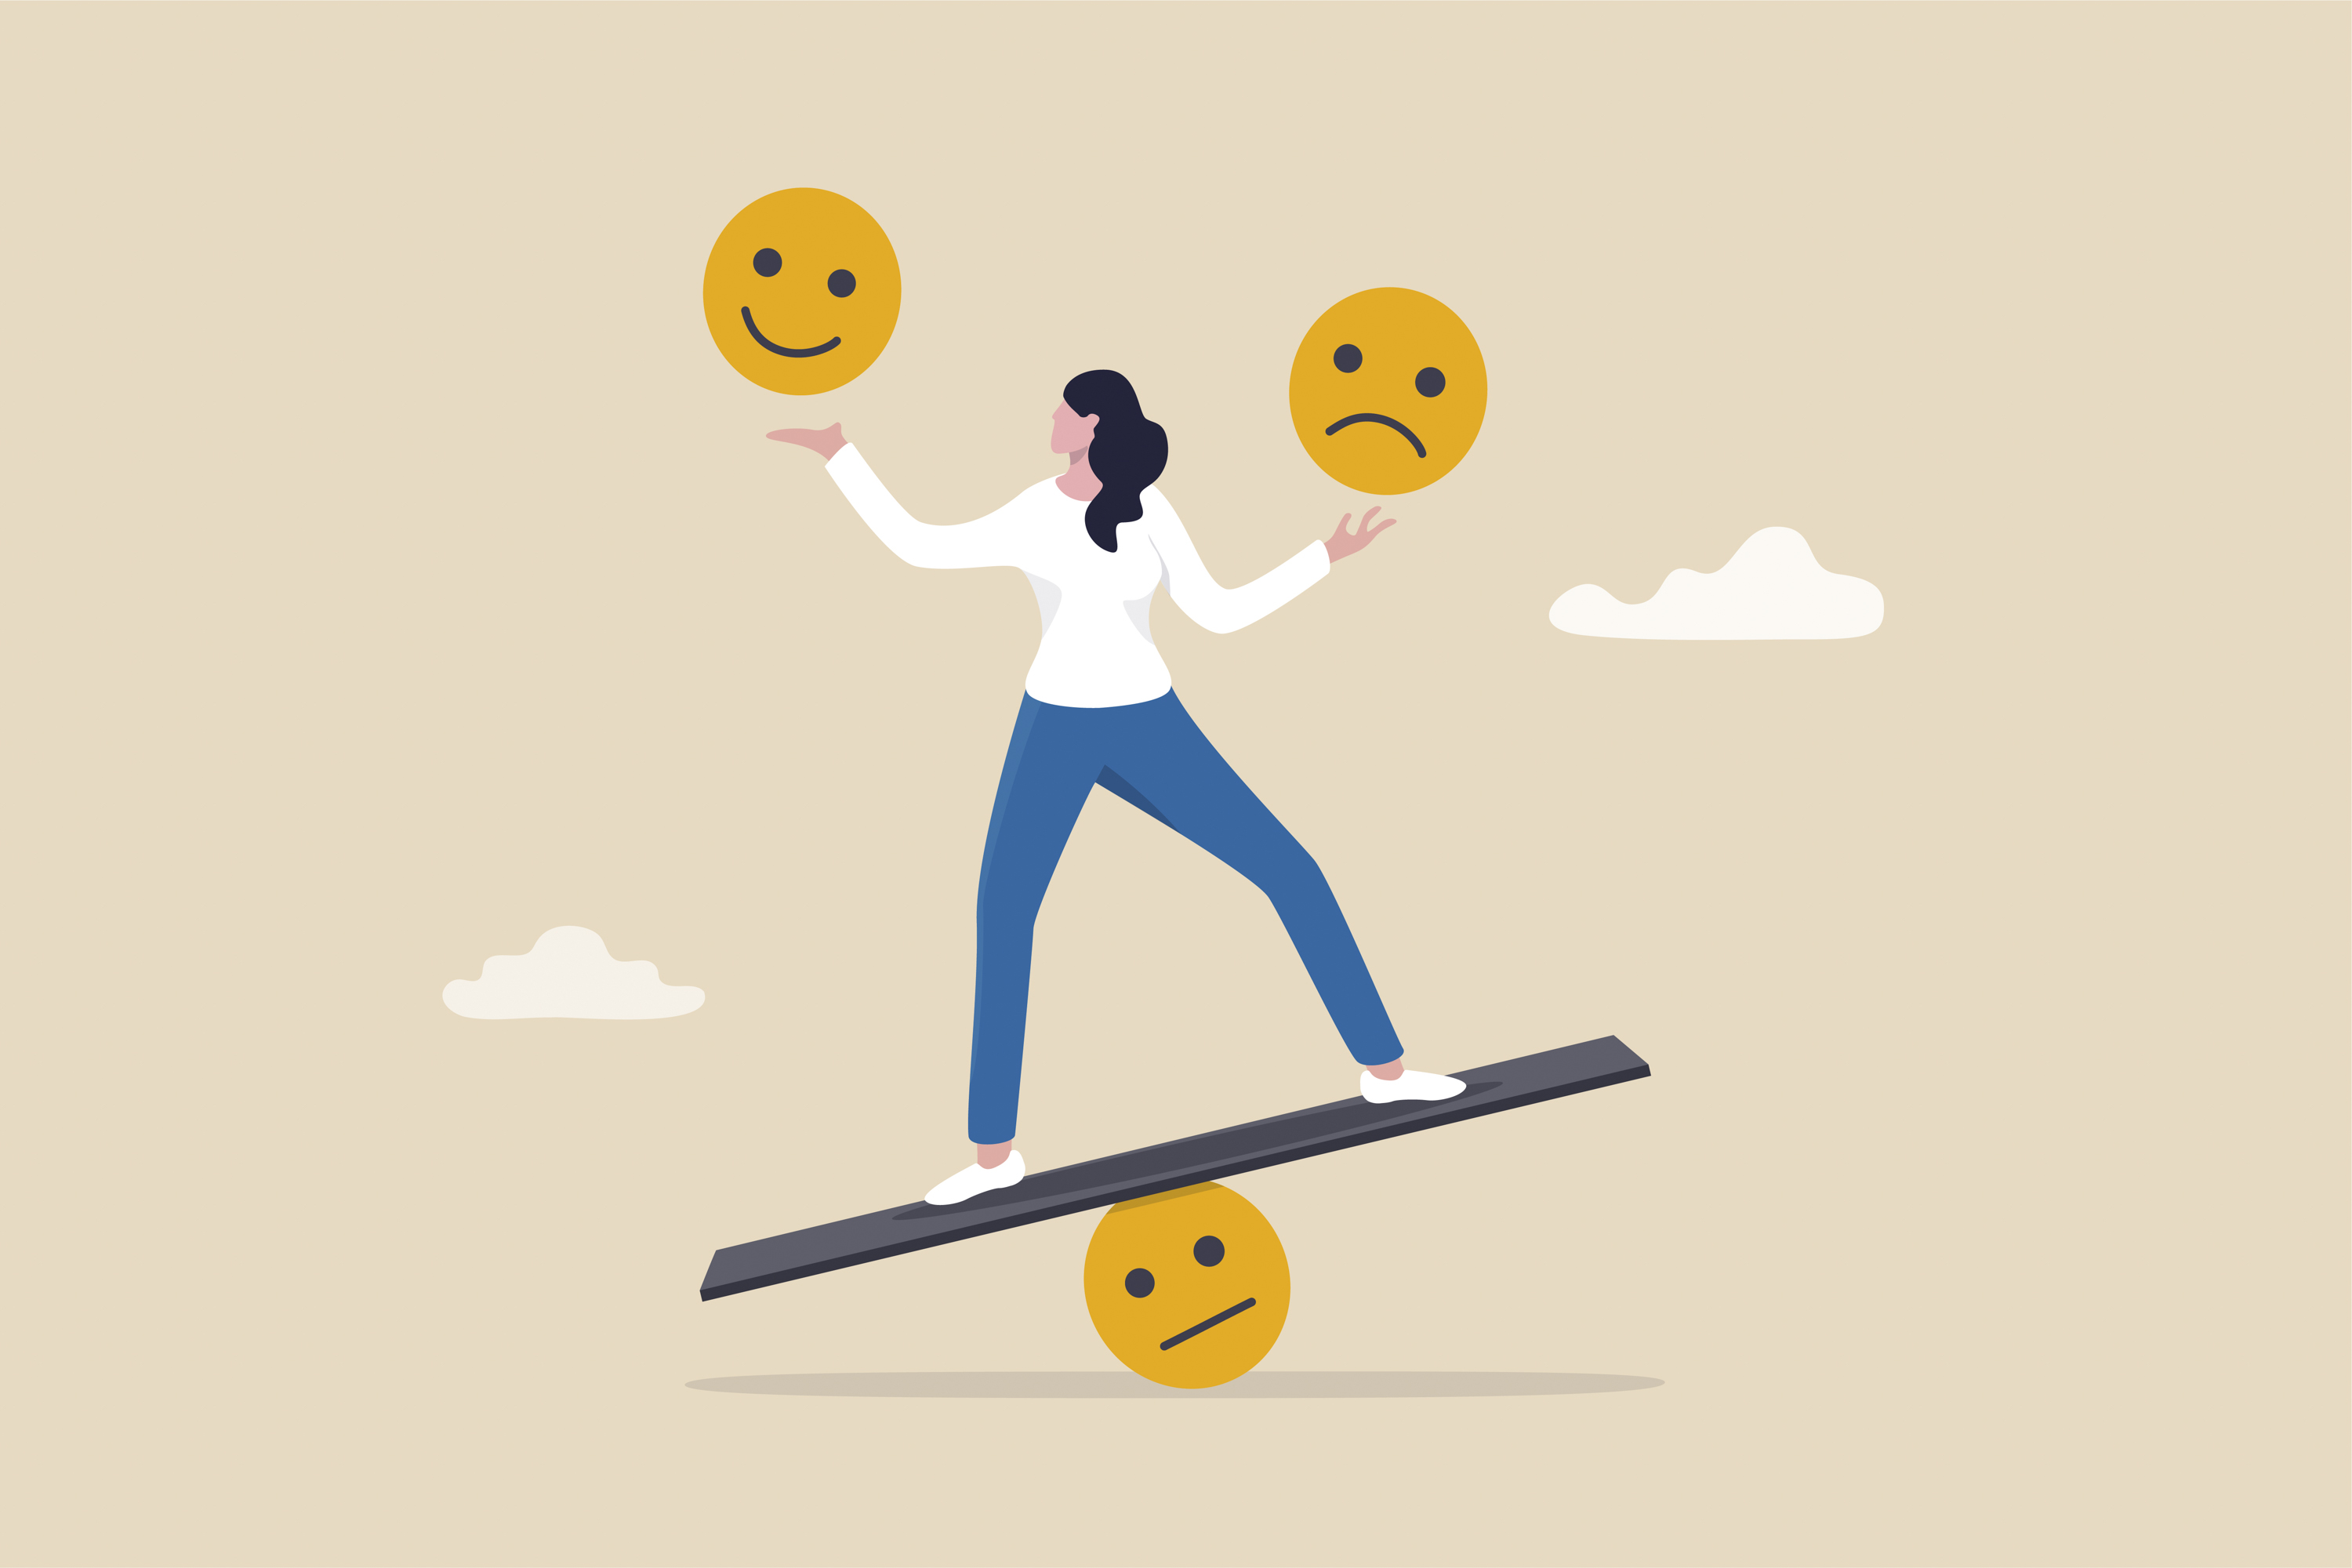 A drawing of a person on a balance board with a smiley face over one hand and a frown face over the other.